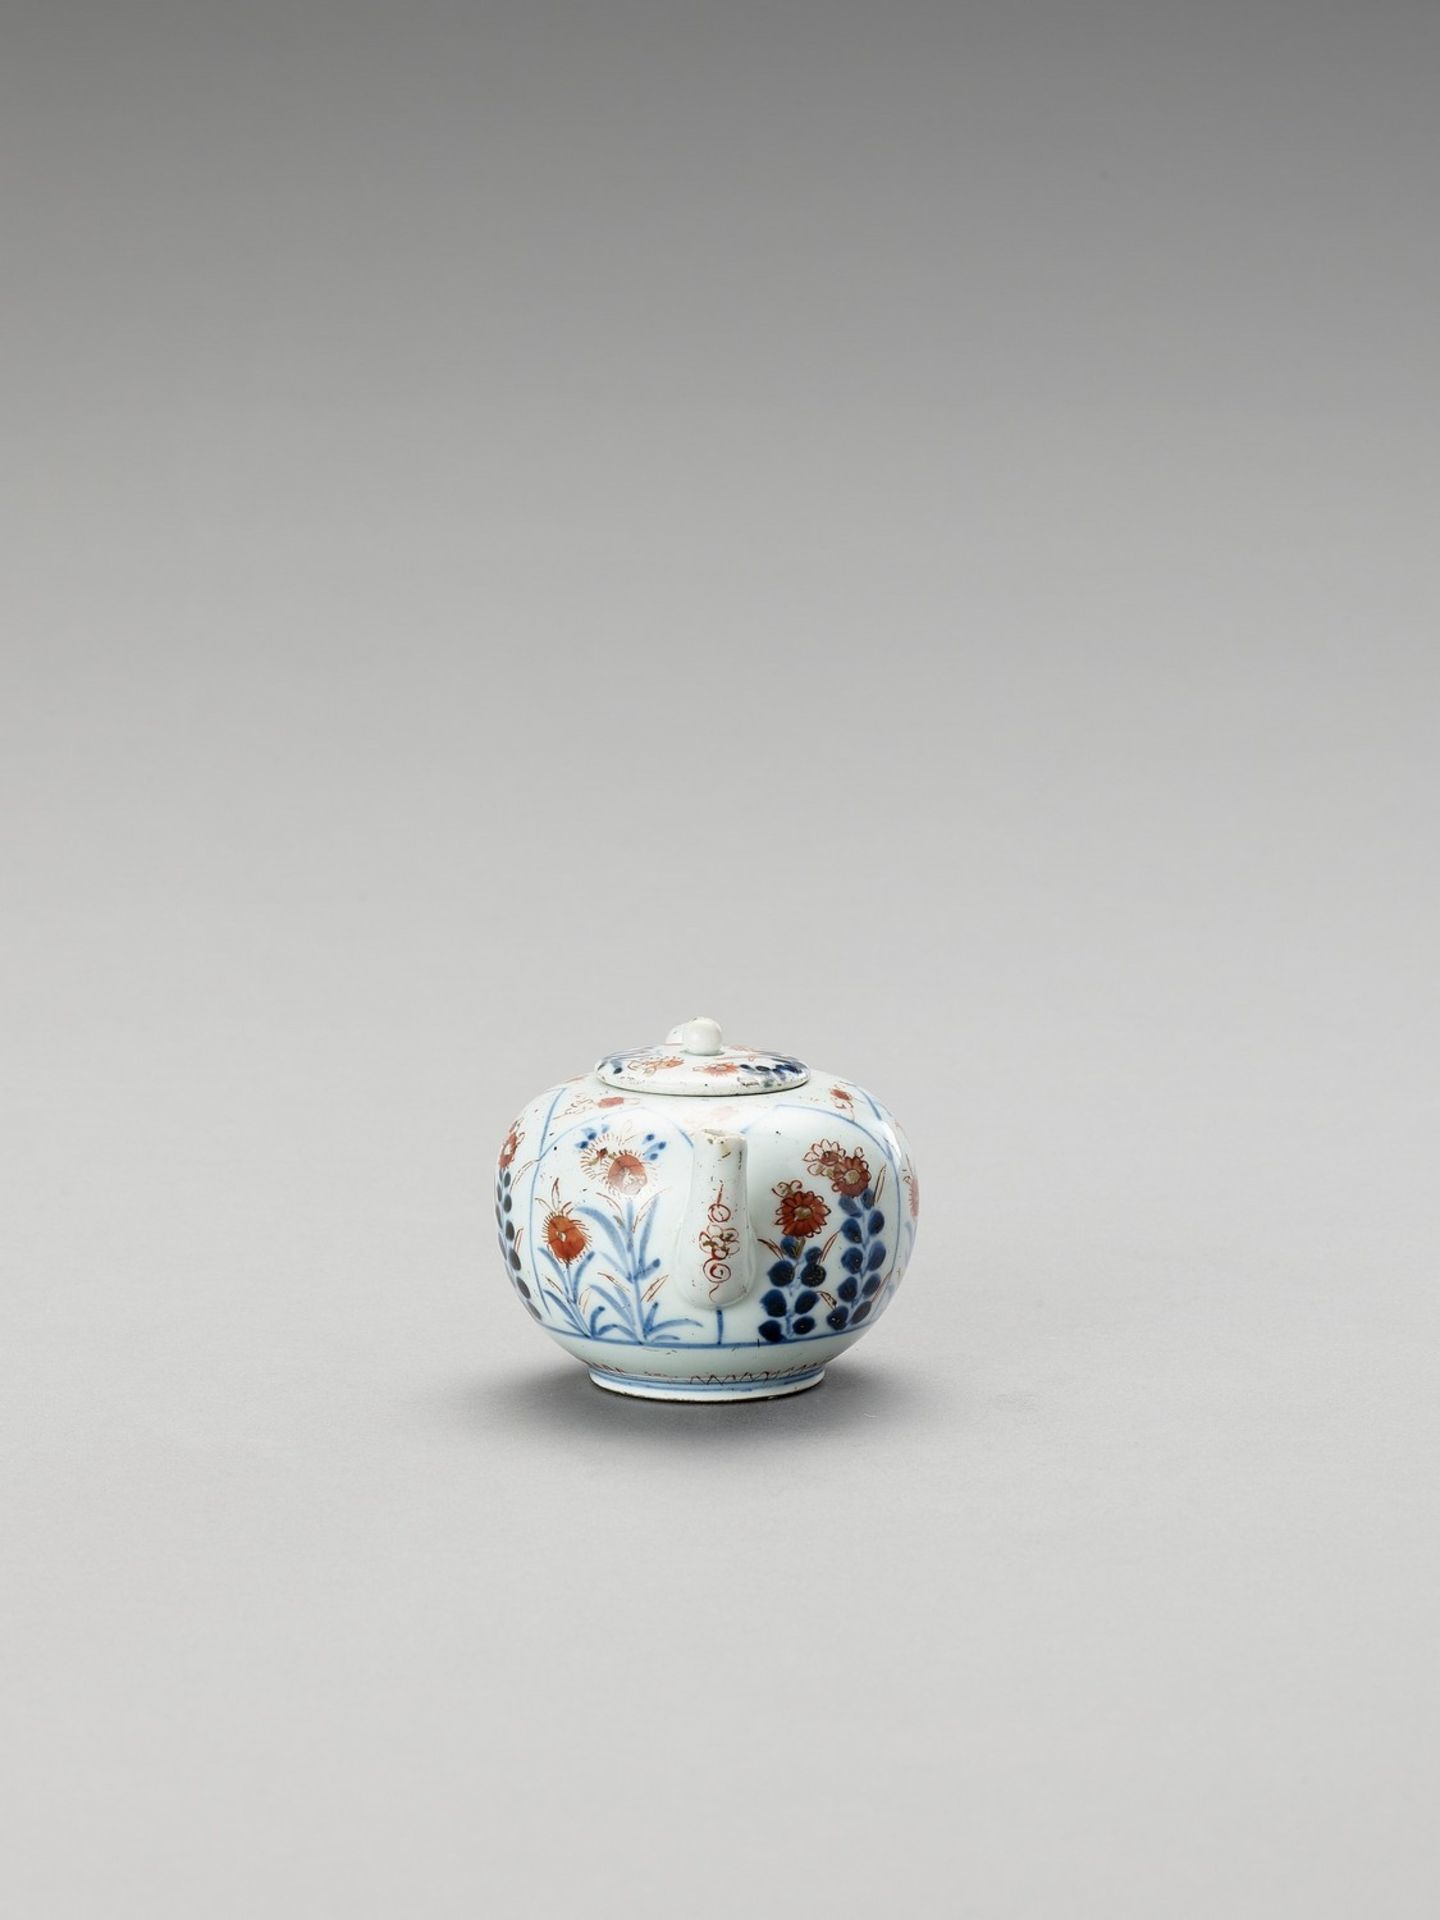 AN IMARI PORCELAIN TEAPOT WITH COVER - Image 3 of 6